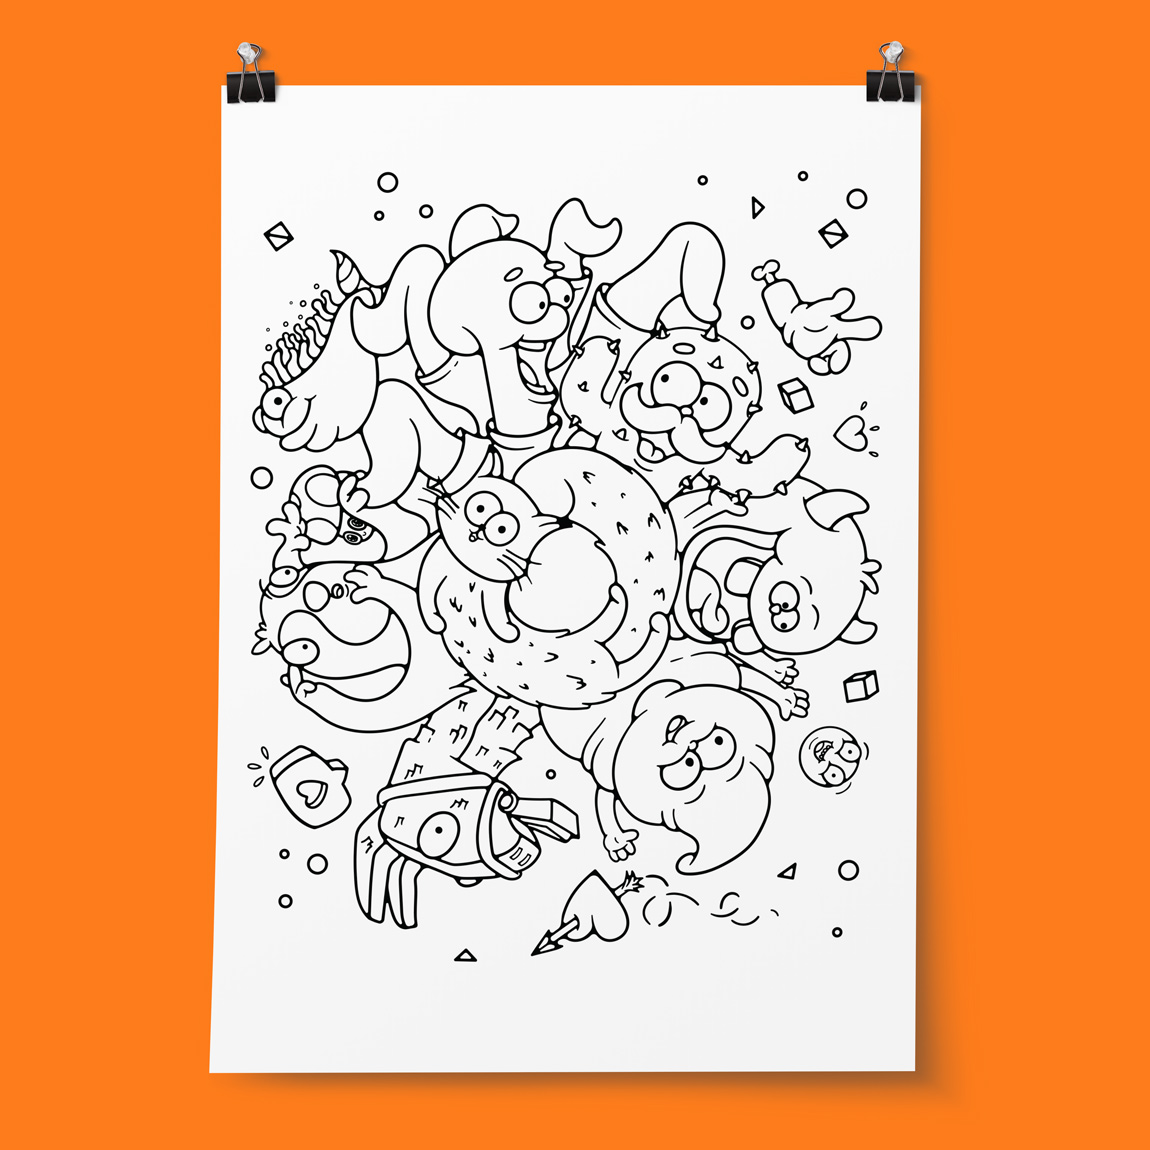 Buy a giant Colorable poster